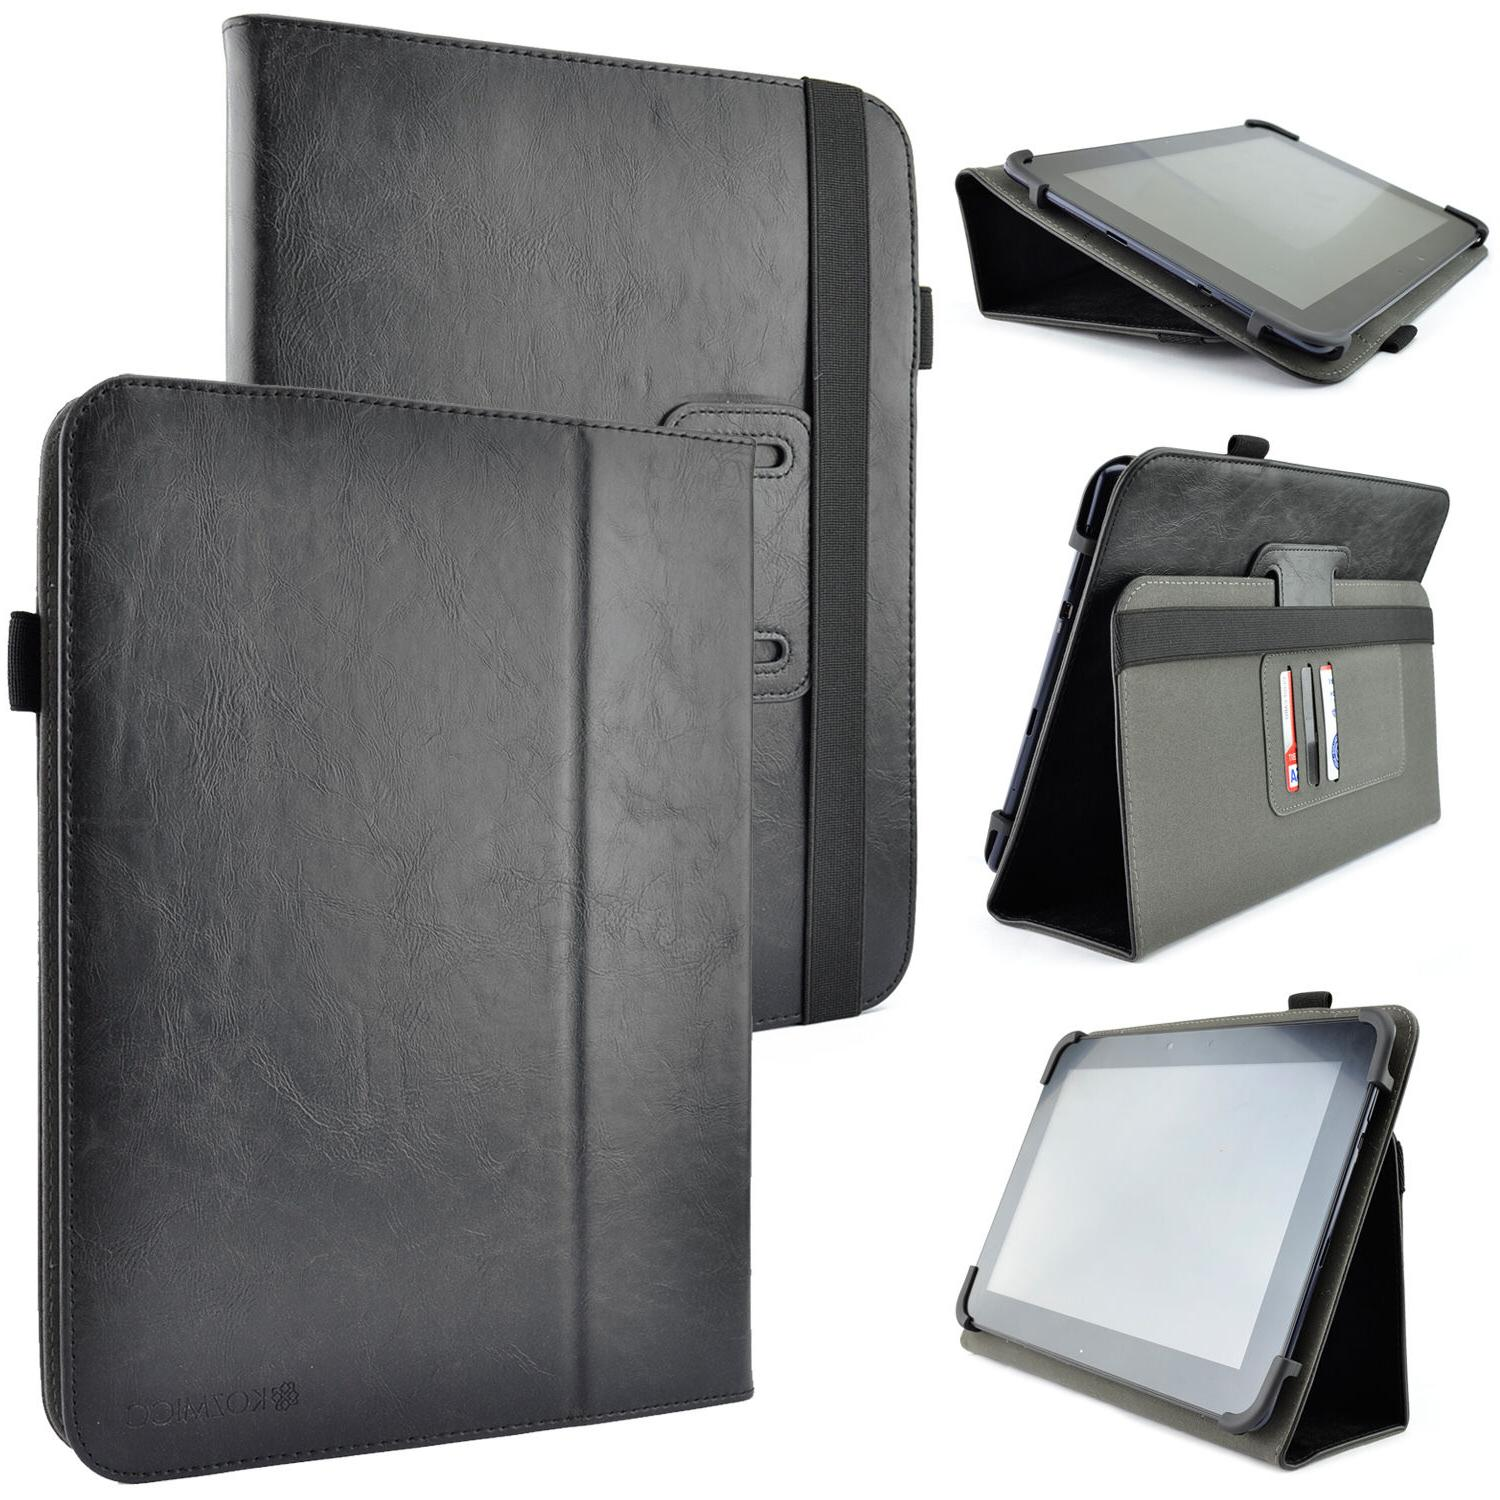 Kozmicc Universal Adjustable Folio Stand Case Cover for 8.9